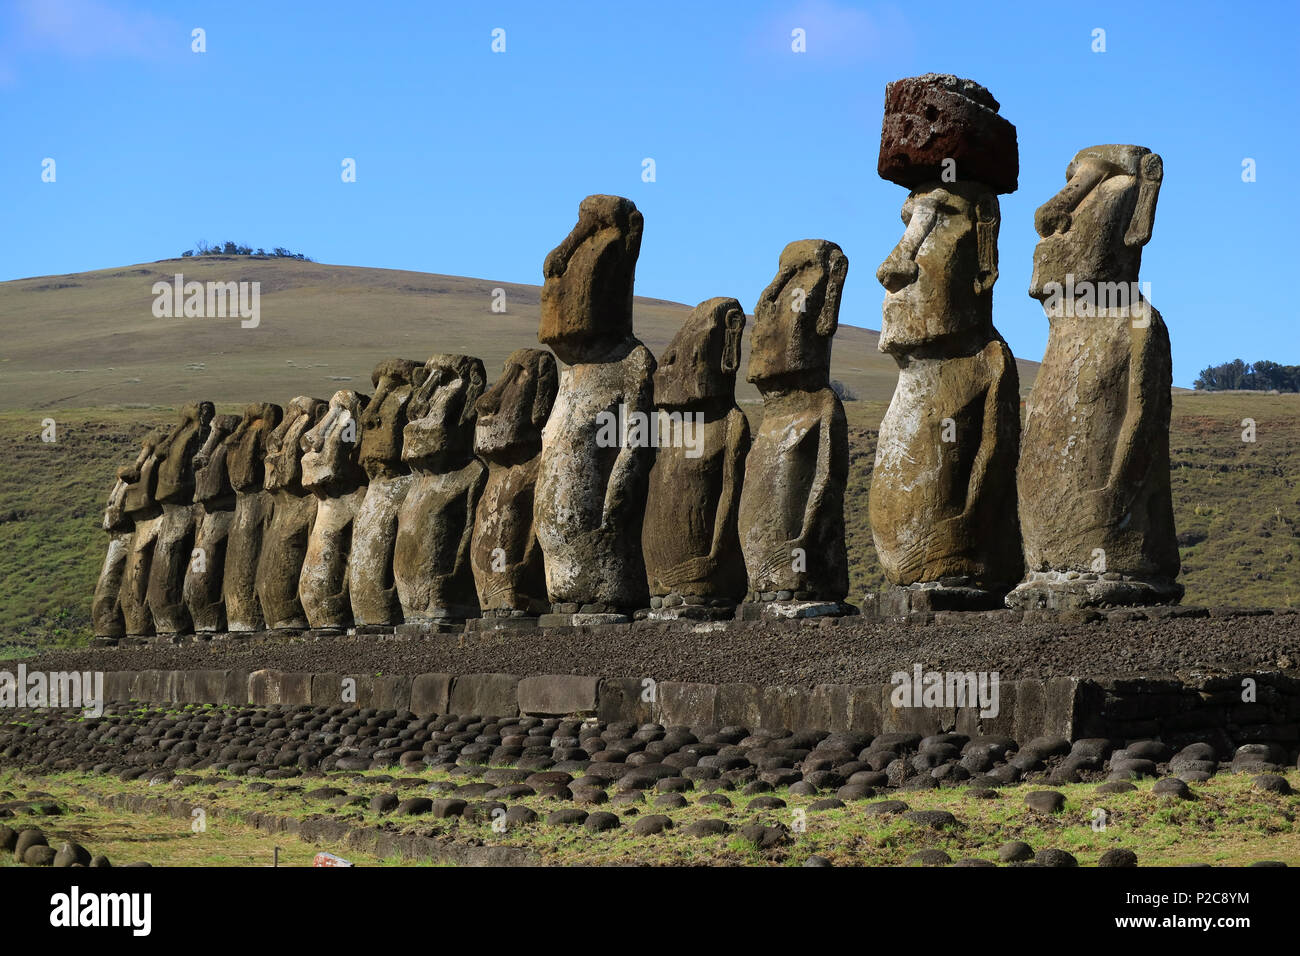 Stunning view of 15 huge Moai statues of Ahu Tongariki with Poike volcano in the background, Easter Island, Chile, South America - Stock Image